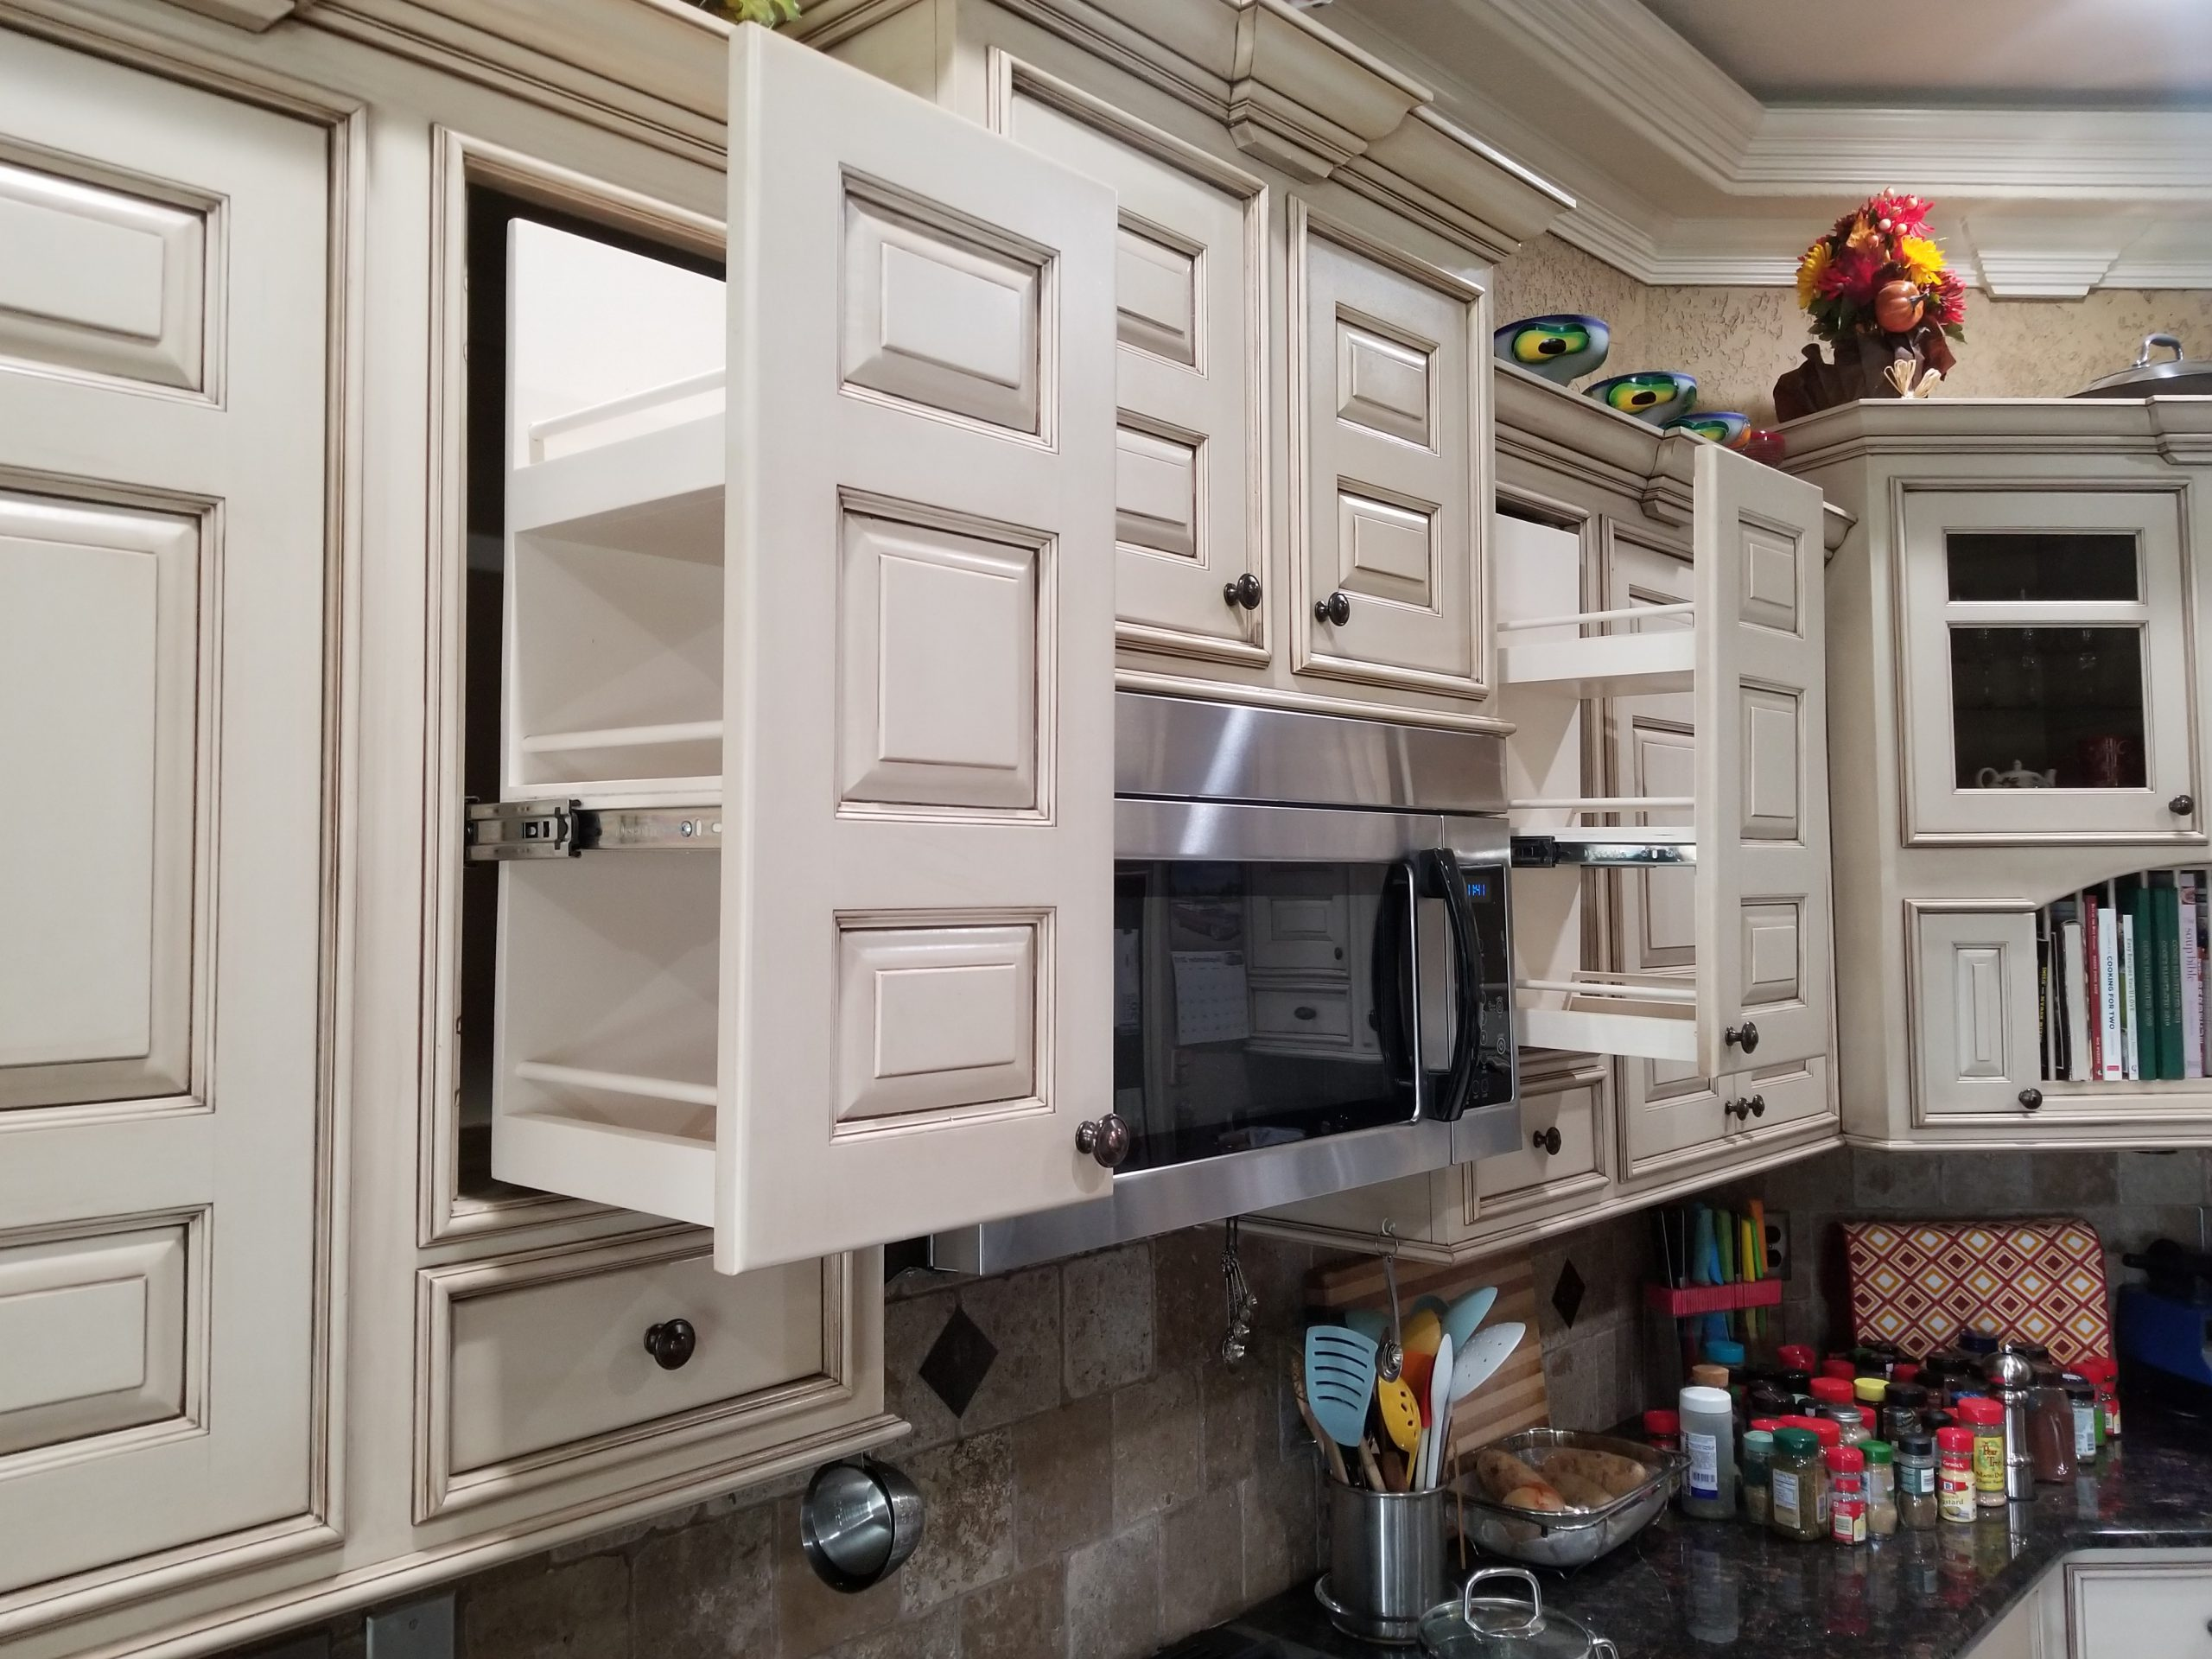 Buy custom traditional kitchen cabinets factory direct in Howell NJ, Buy custom slab panel kitchen cabinets factory direct in Howell NJ, Buy custom flat panel kitchen cabinets factory direct in Howell NJ